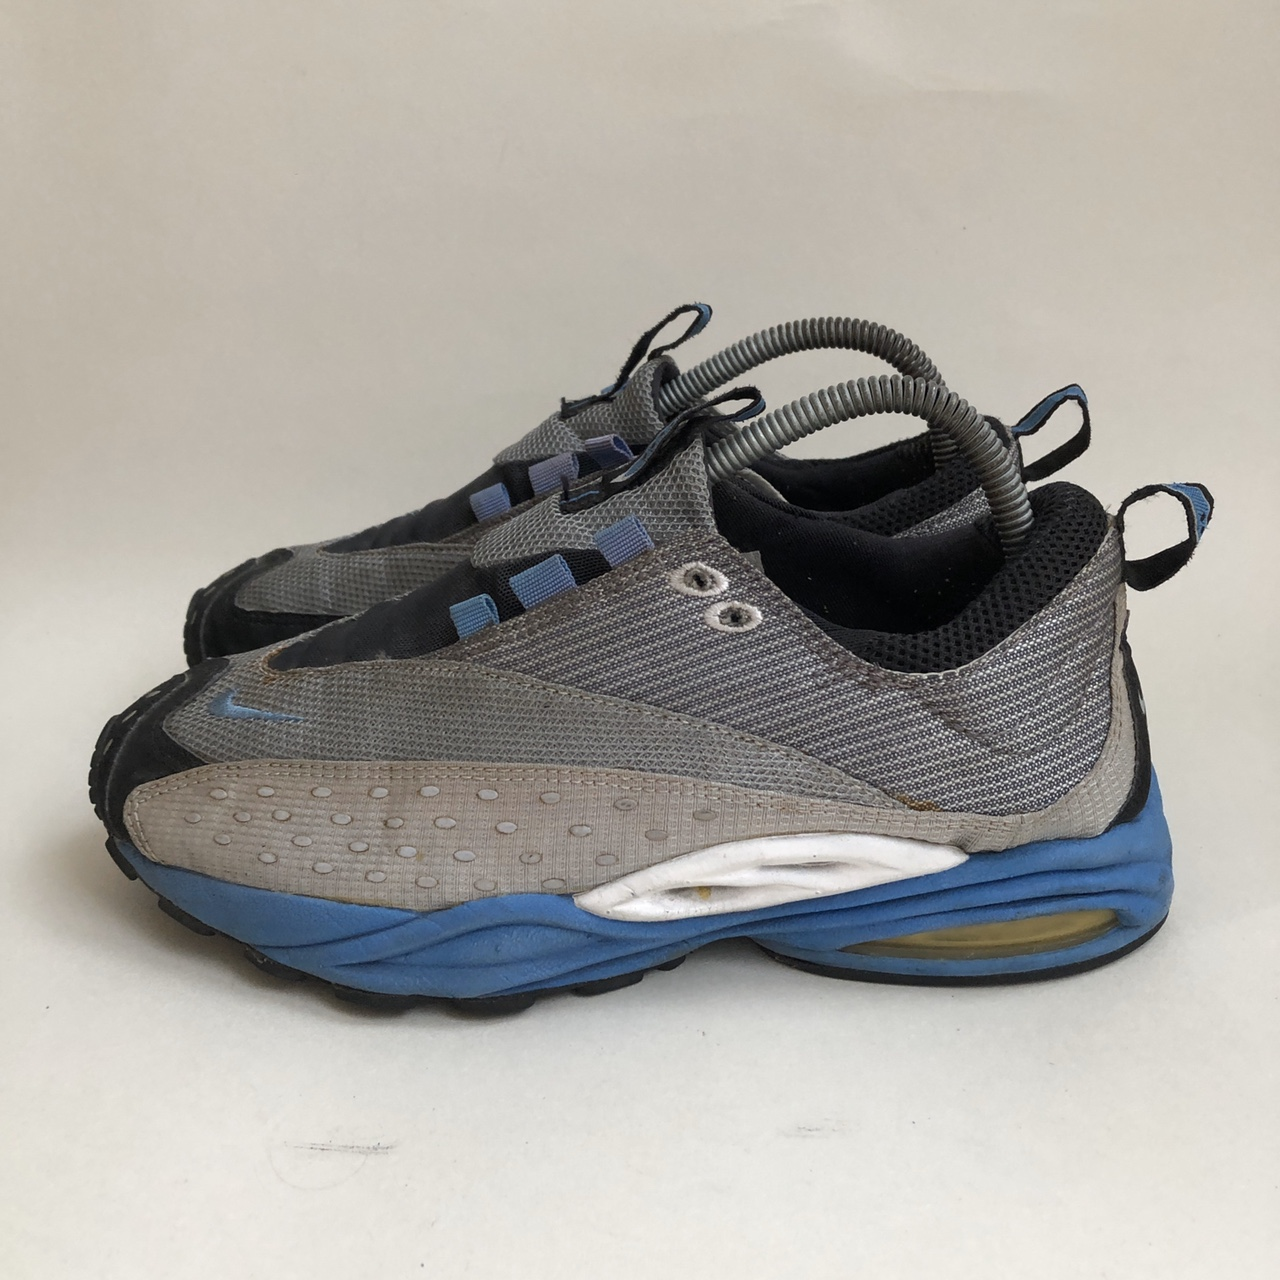 1999 Nike Air Zoom Drive. Possibly one